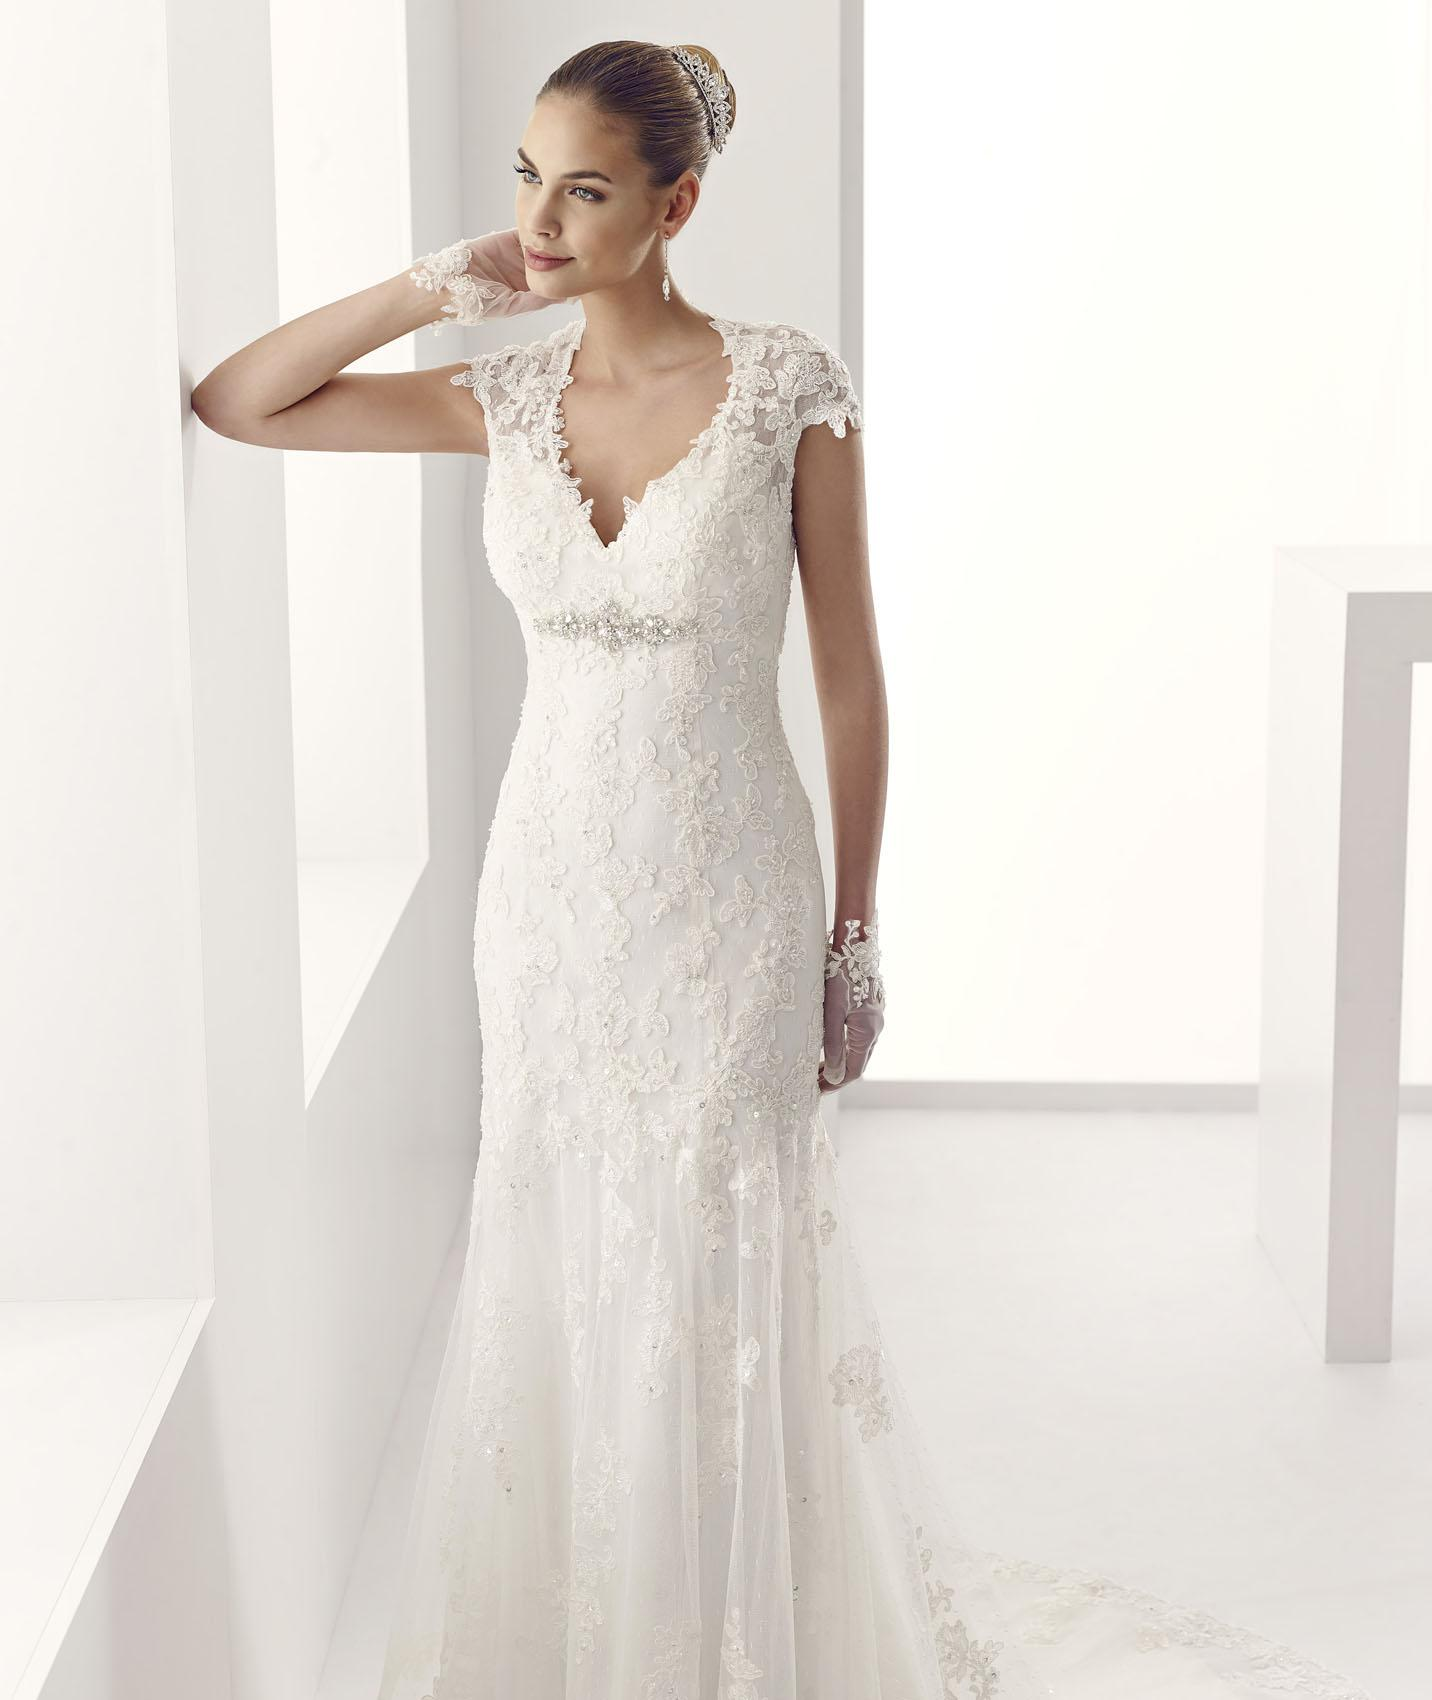 Elegant Sheath/Column V-neck Beading&Crystal&Sequins Sweep/Brush Train Lace Embroidery on Tulle Wedding Dresses